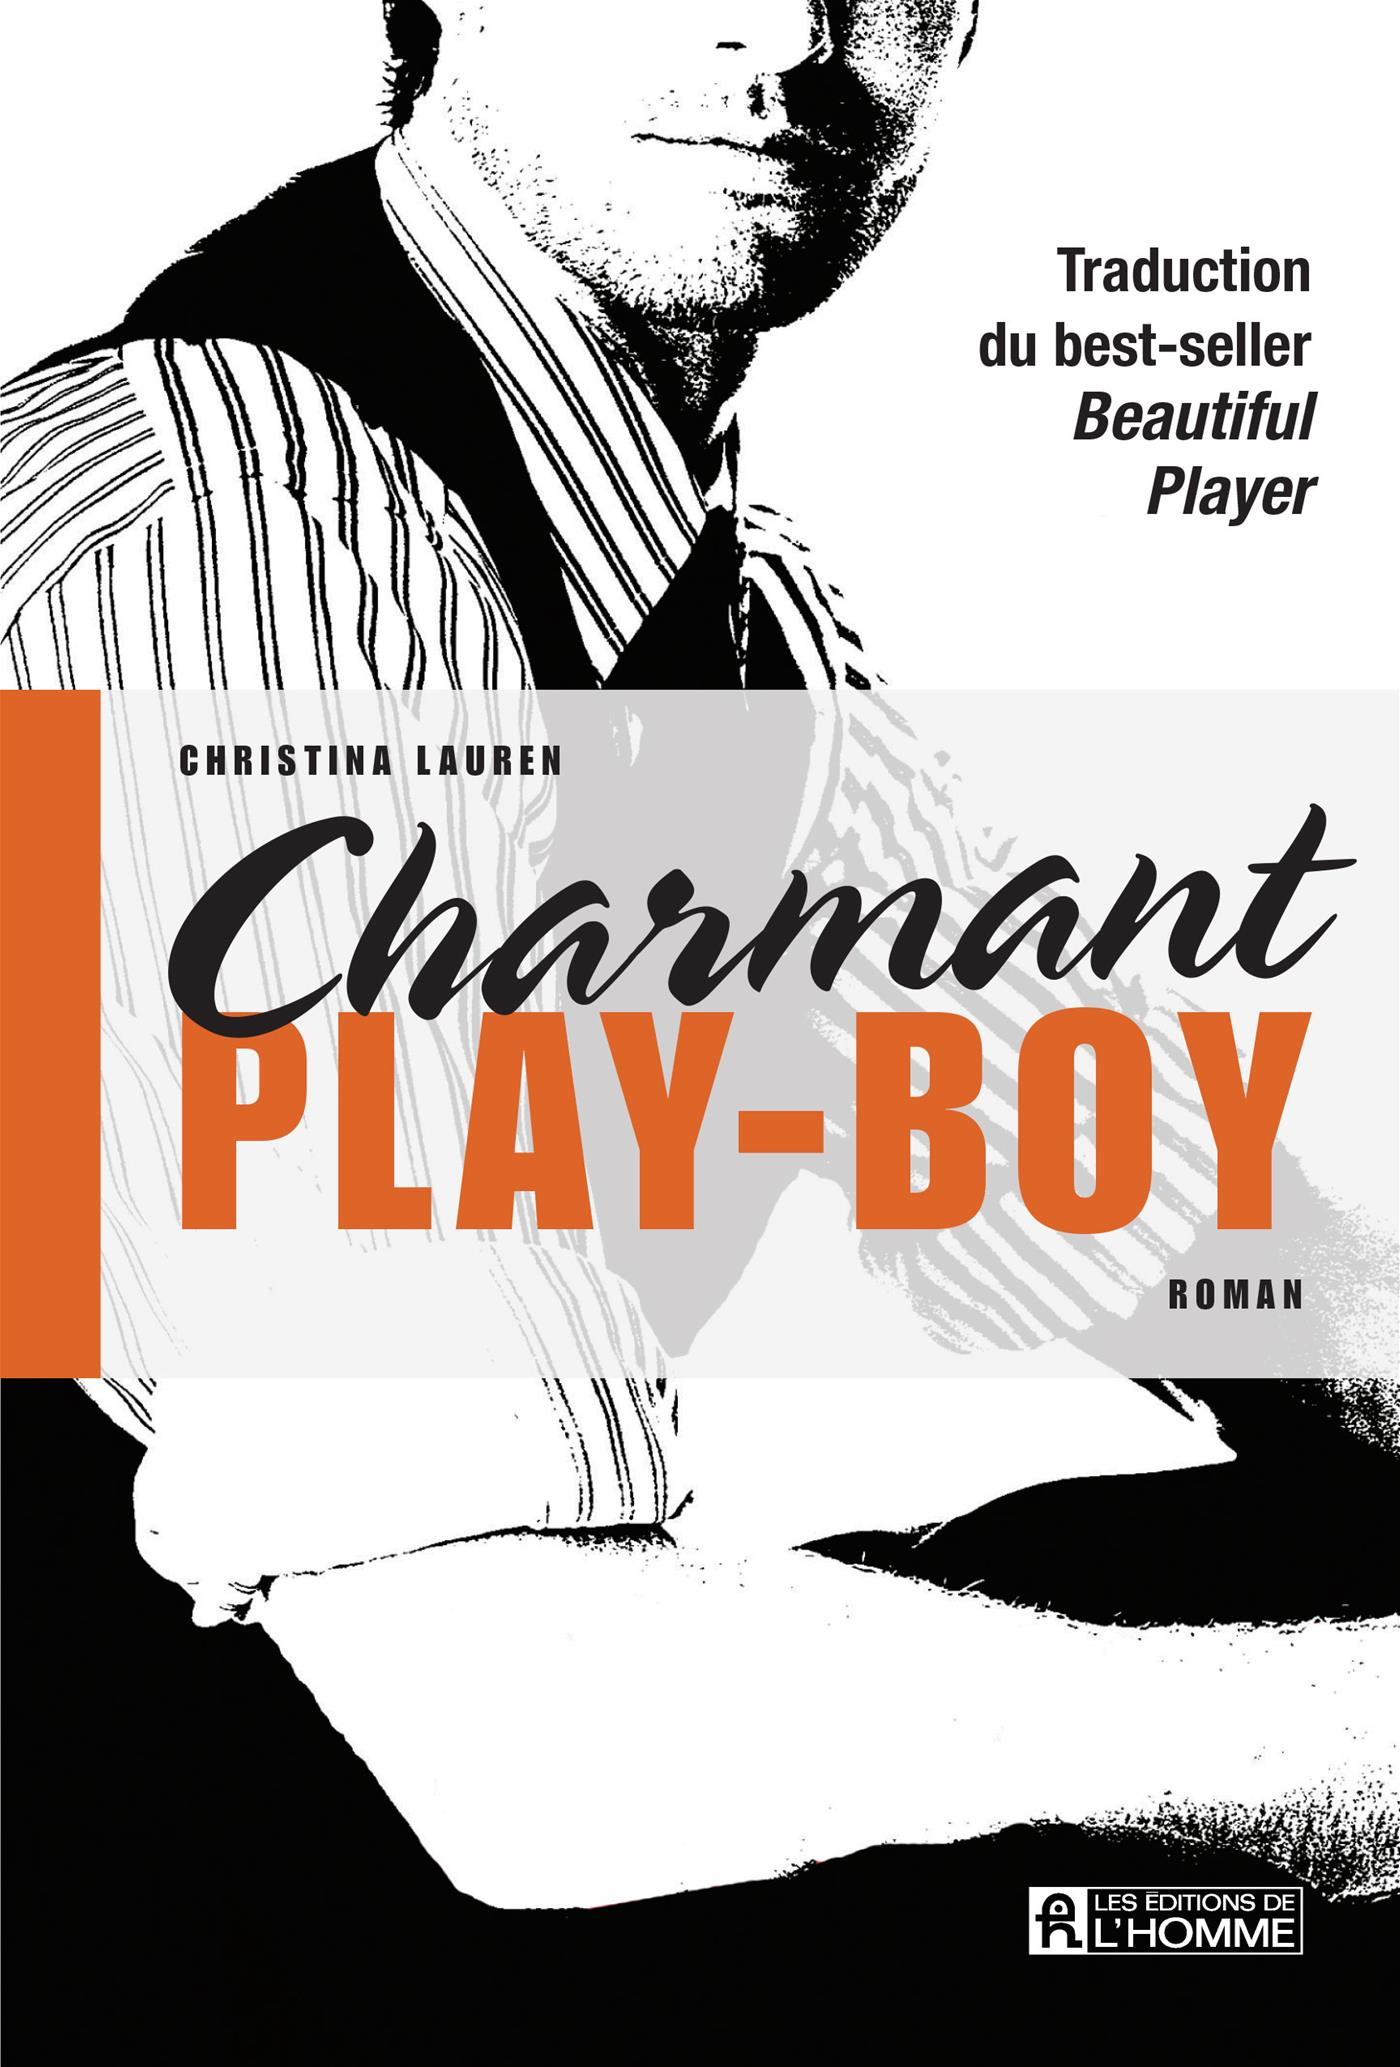 Charmant play-boy